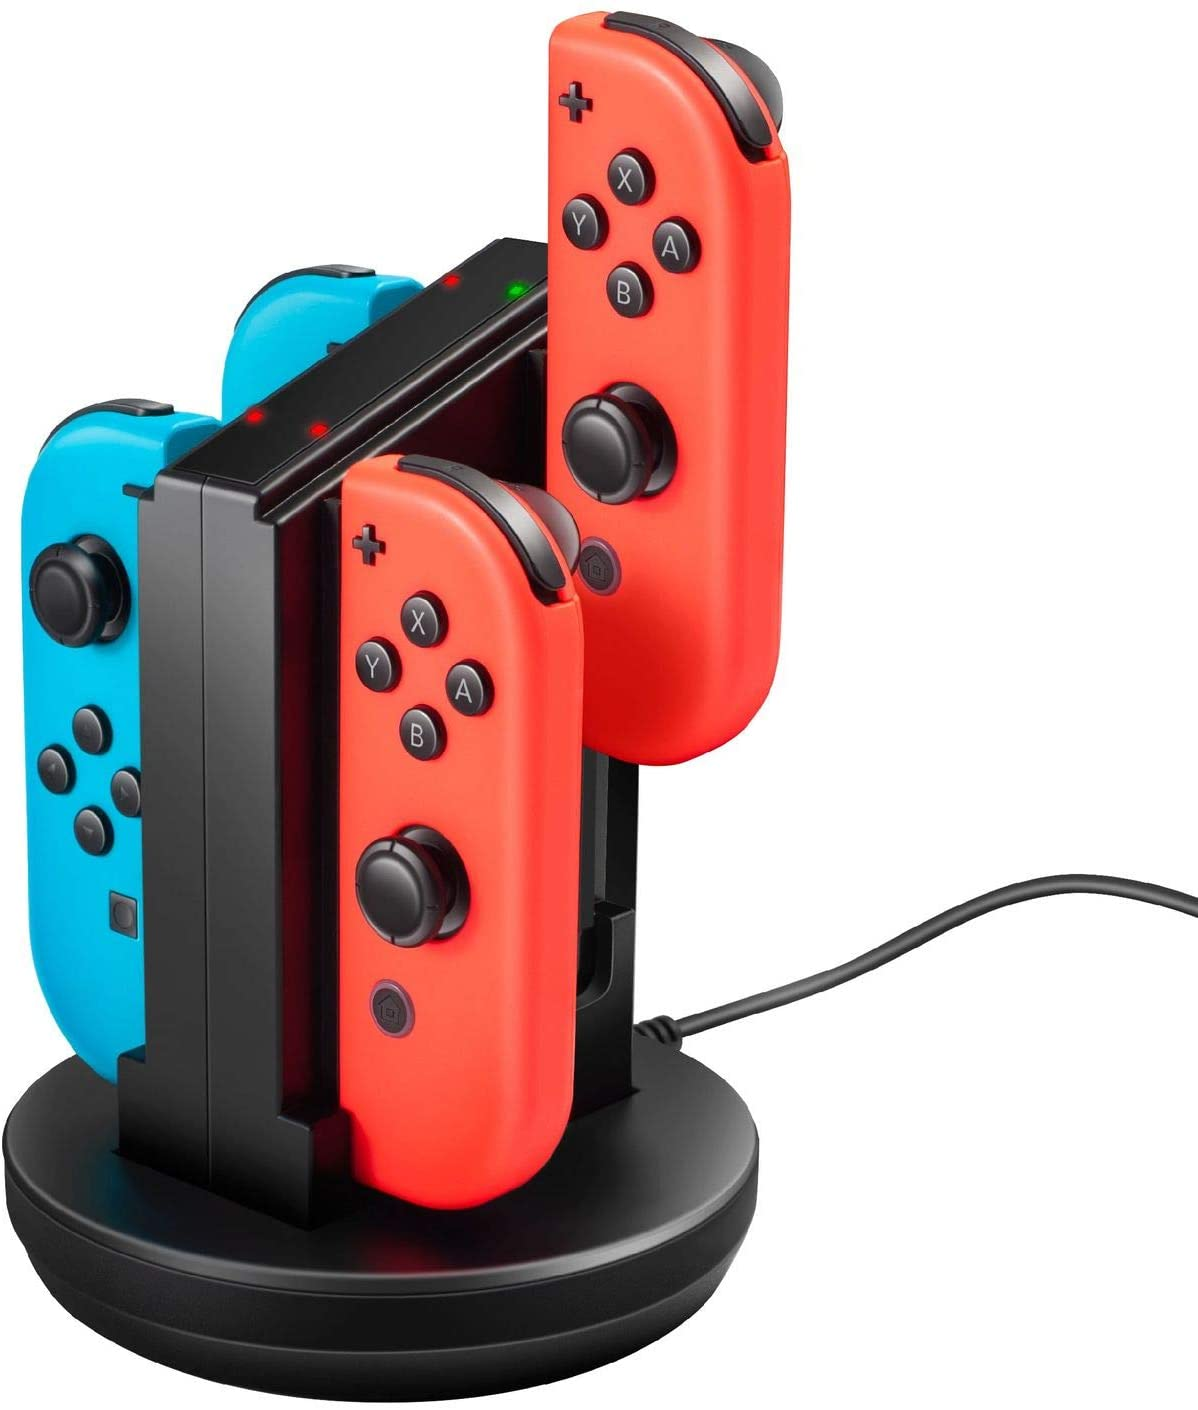 for Switch Joycon Charger Charging Station Compatible with Nintendo Switch Joy-Con Controllers 4-in-1 Dock Stand (with LED Indicators & 3 Feet USB Cable) by Insten